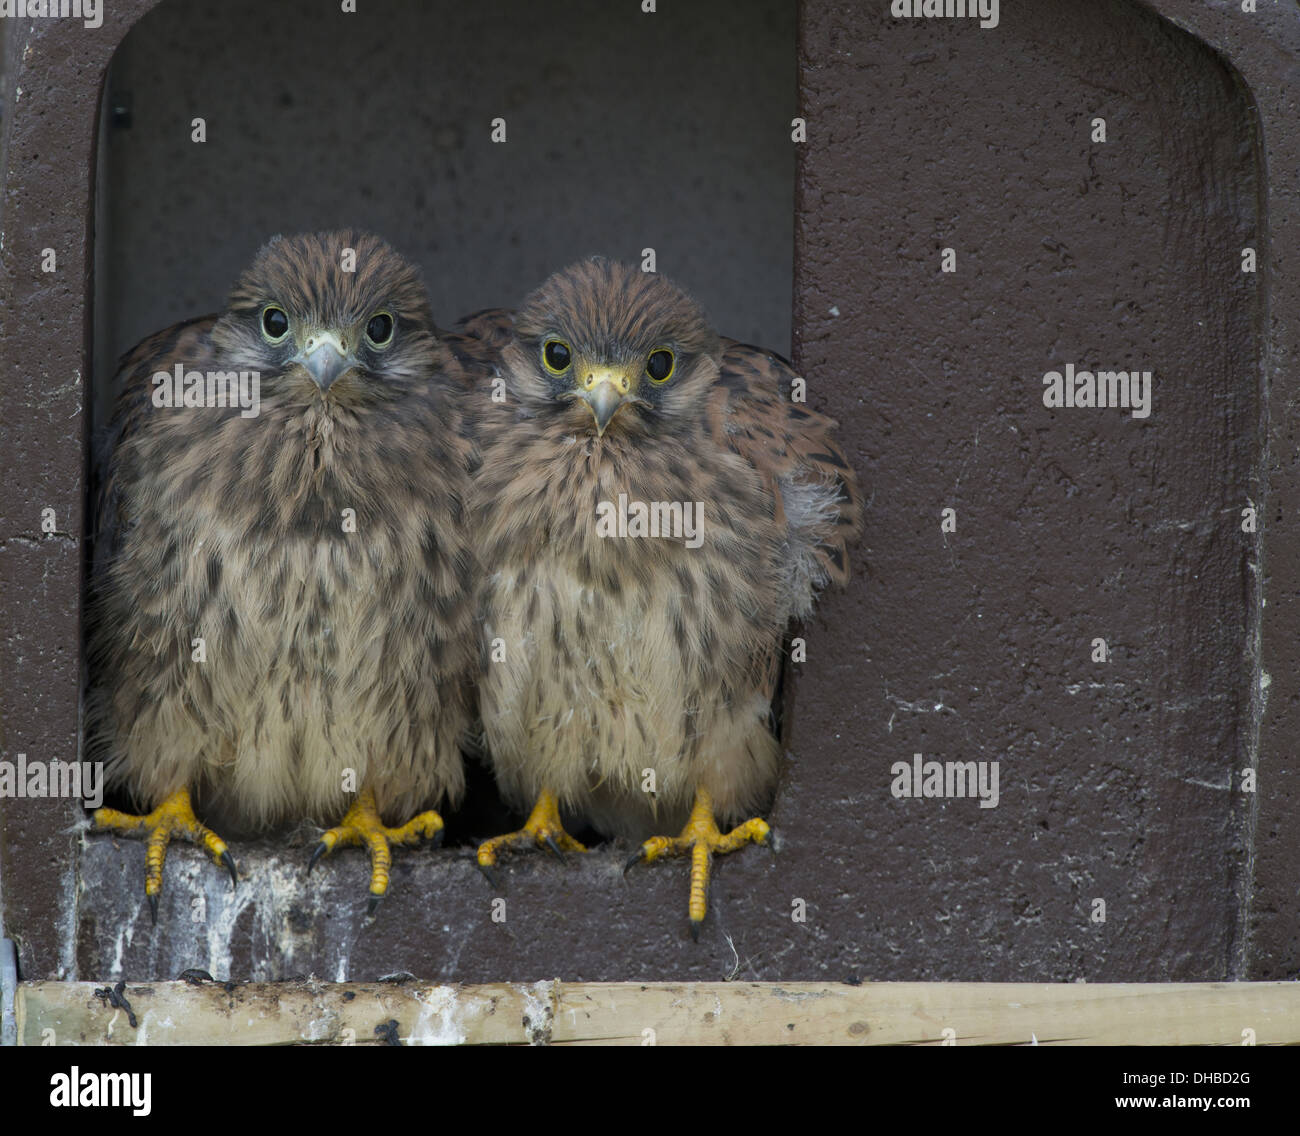 Two young Common Kestrels, Falco tinnunculus, Germany, Europe - Stock Image